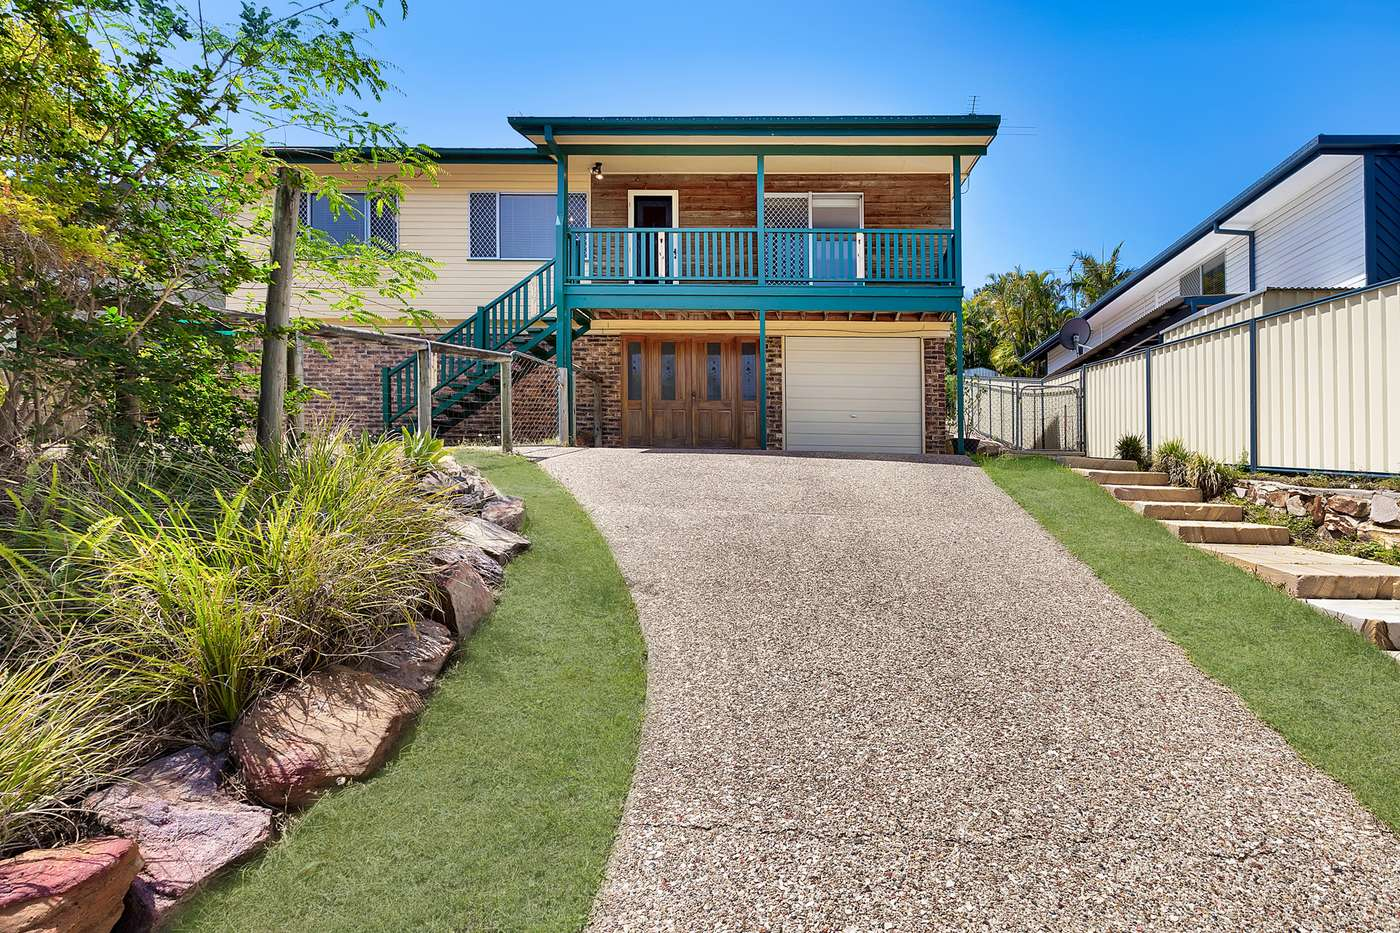 Main view of Homely house listing, 78 Olearia Street West, Everton Hills, QLD 4053